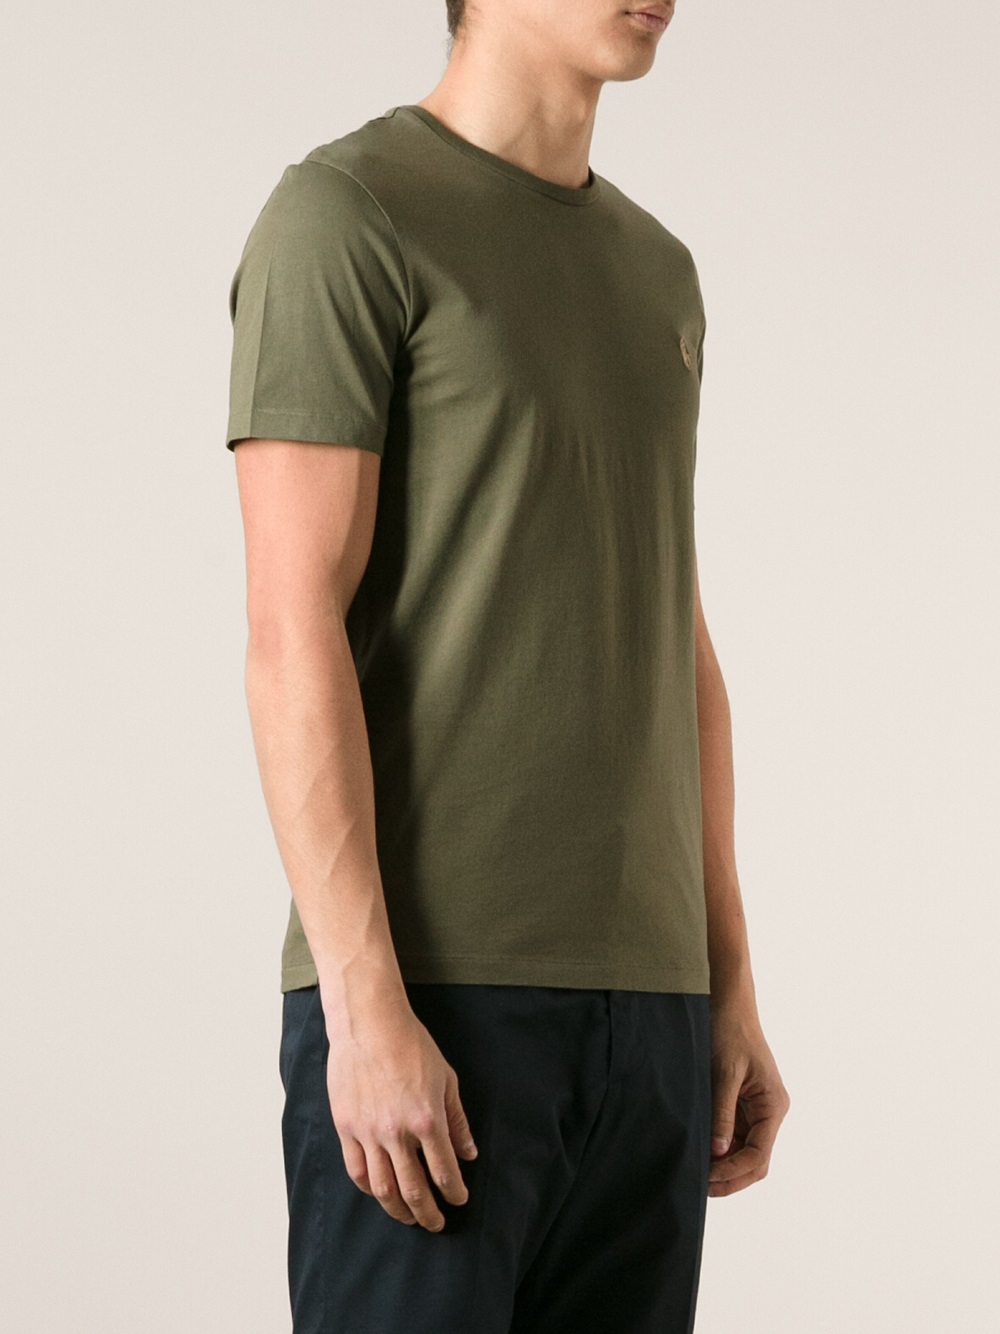 lyst polo ralph lauren custom fit tshirt in green for men